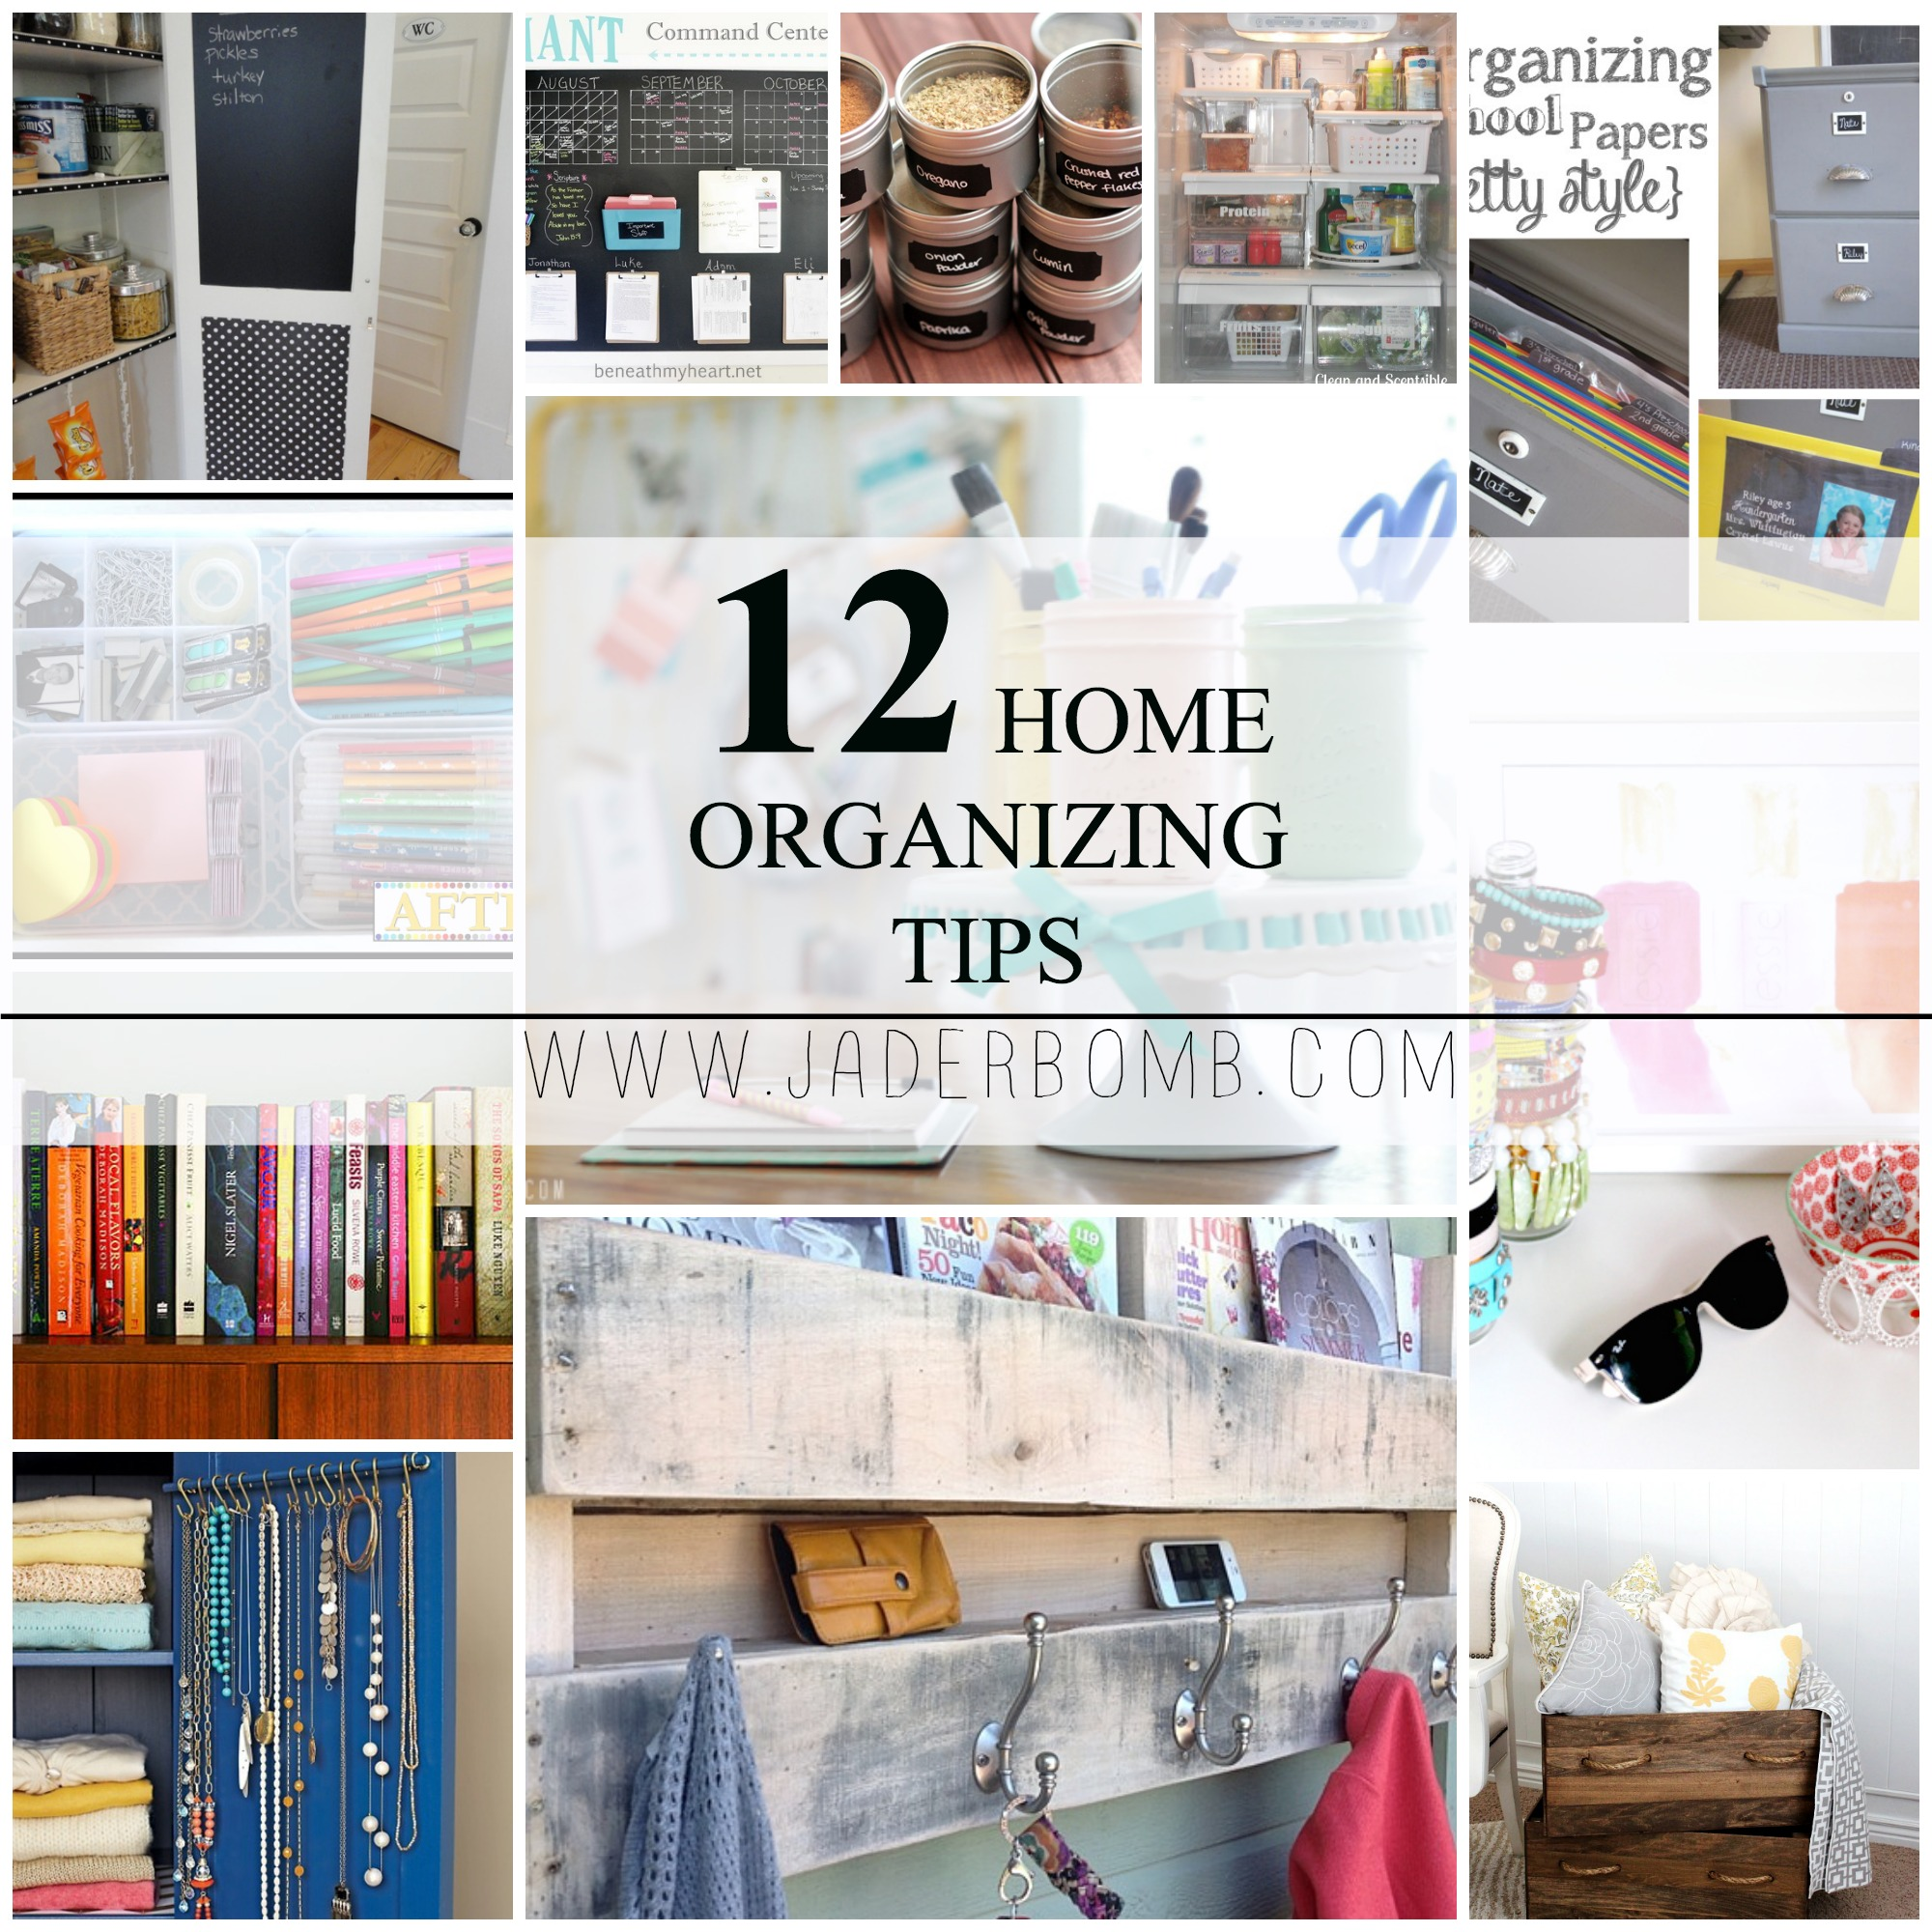 12 Home Organizing Tips  Jaderbomb. Country Living Room Furniture Sets. Tuscan Dining Room Furniture. Peach Living Room. Turquoise Dining Room Ideas. Jeff Lewis Living Room. High Top Dining Room Sets. Room Store Dining Room Sets. Decorating Ideas For Apartment Living Rooms